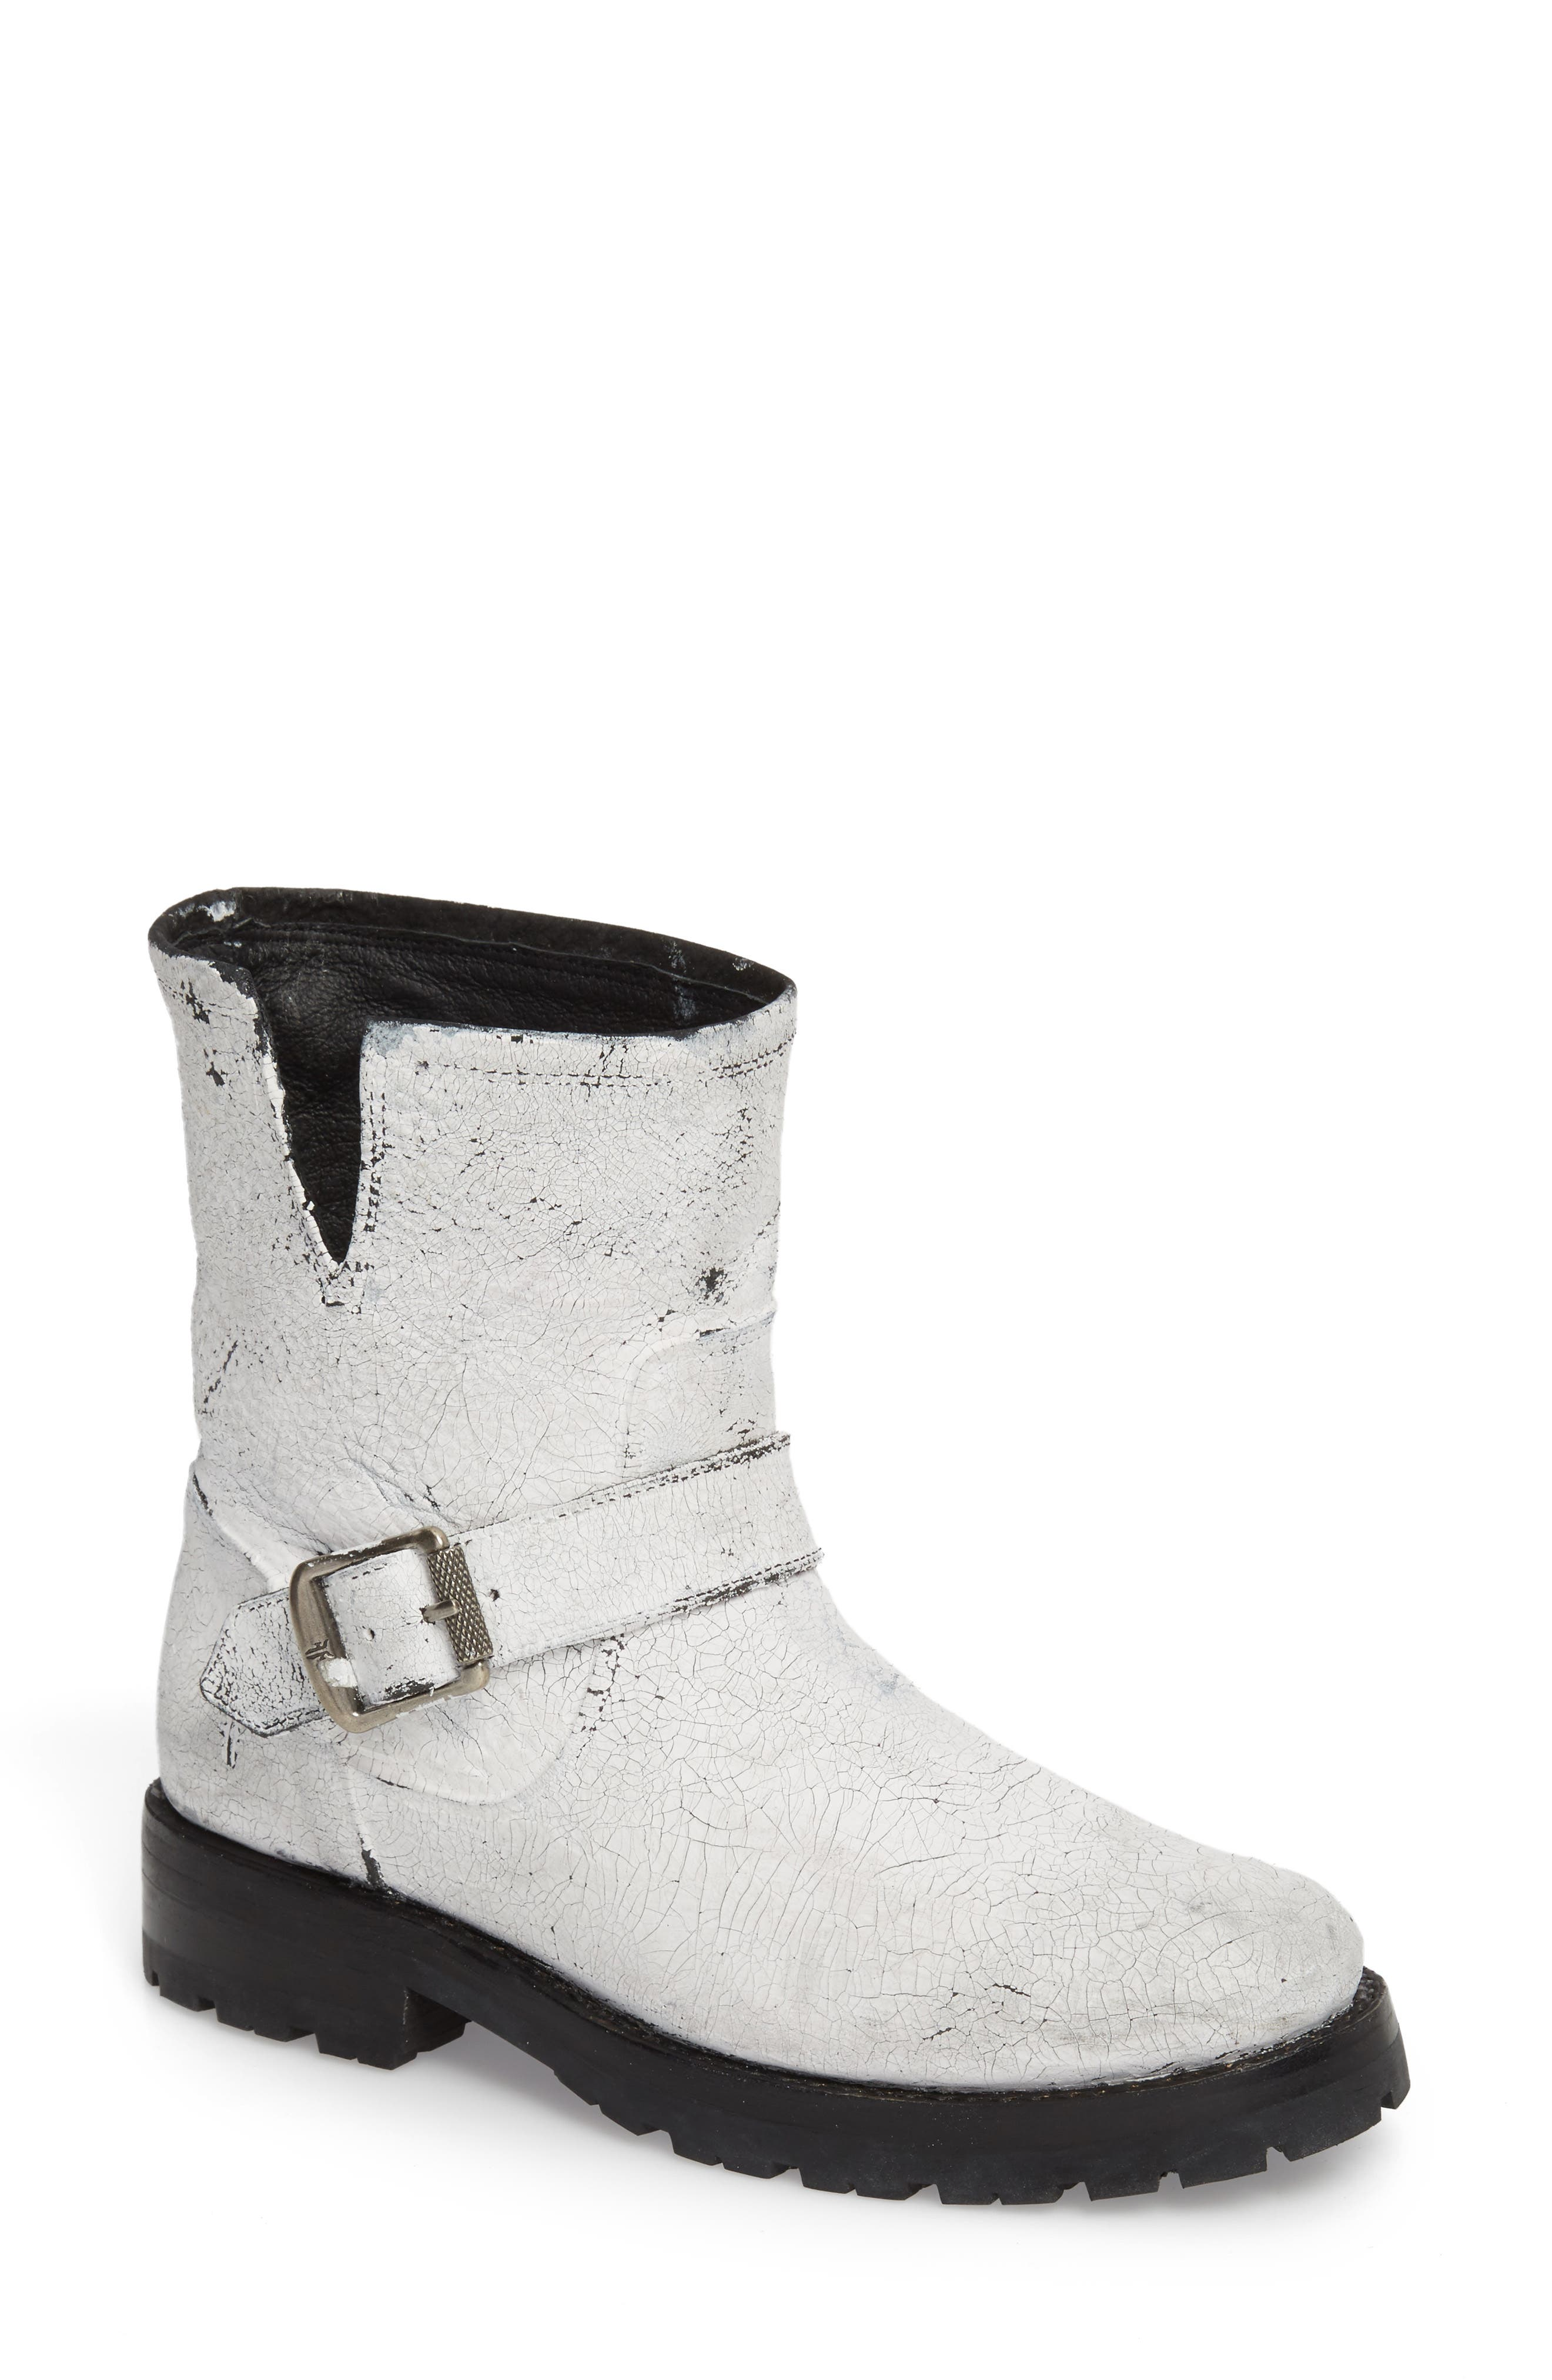 FRYE, Natalie Engineer Boot, Main thumbnail 1, color, WHITE LEATHER